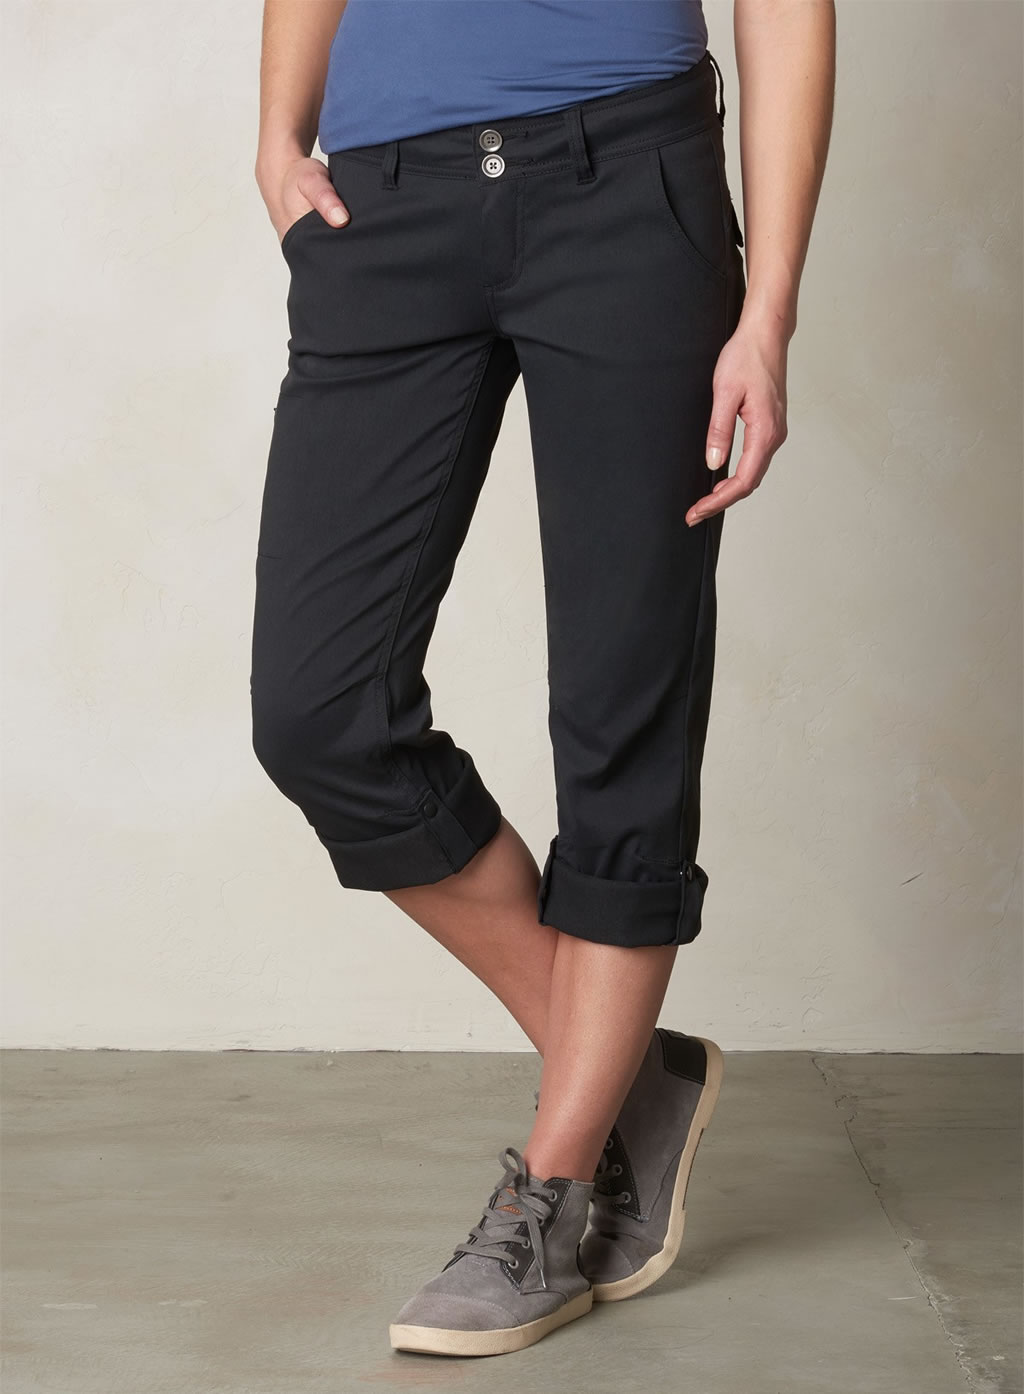 Black Halle Hiking Pants for women by Prana